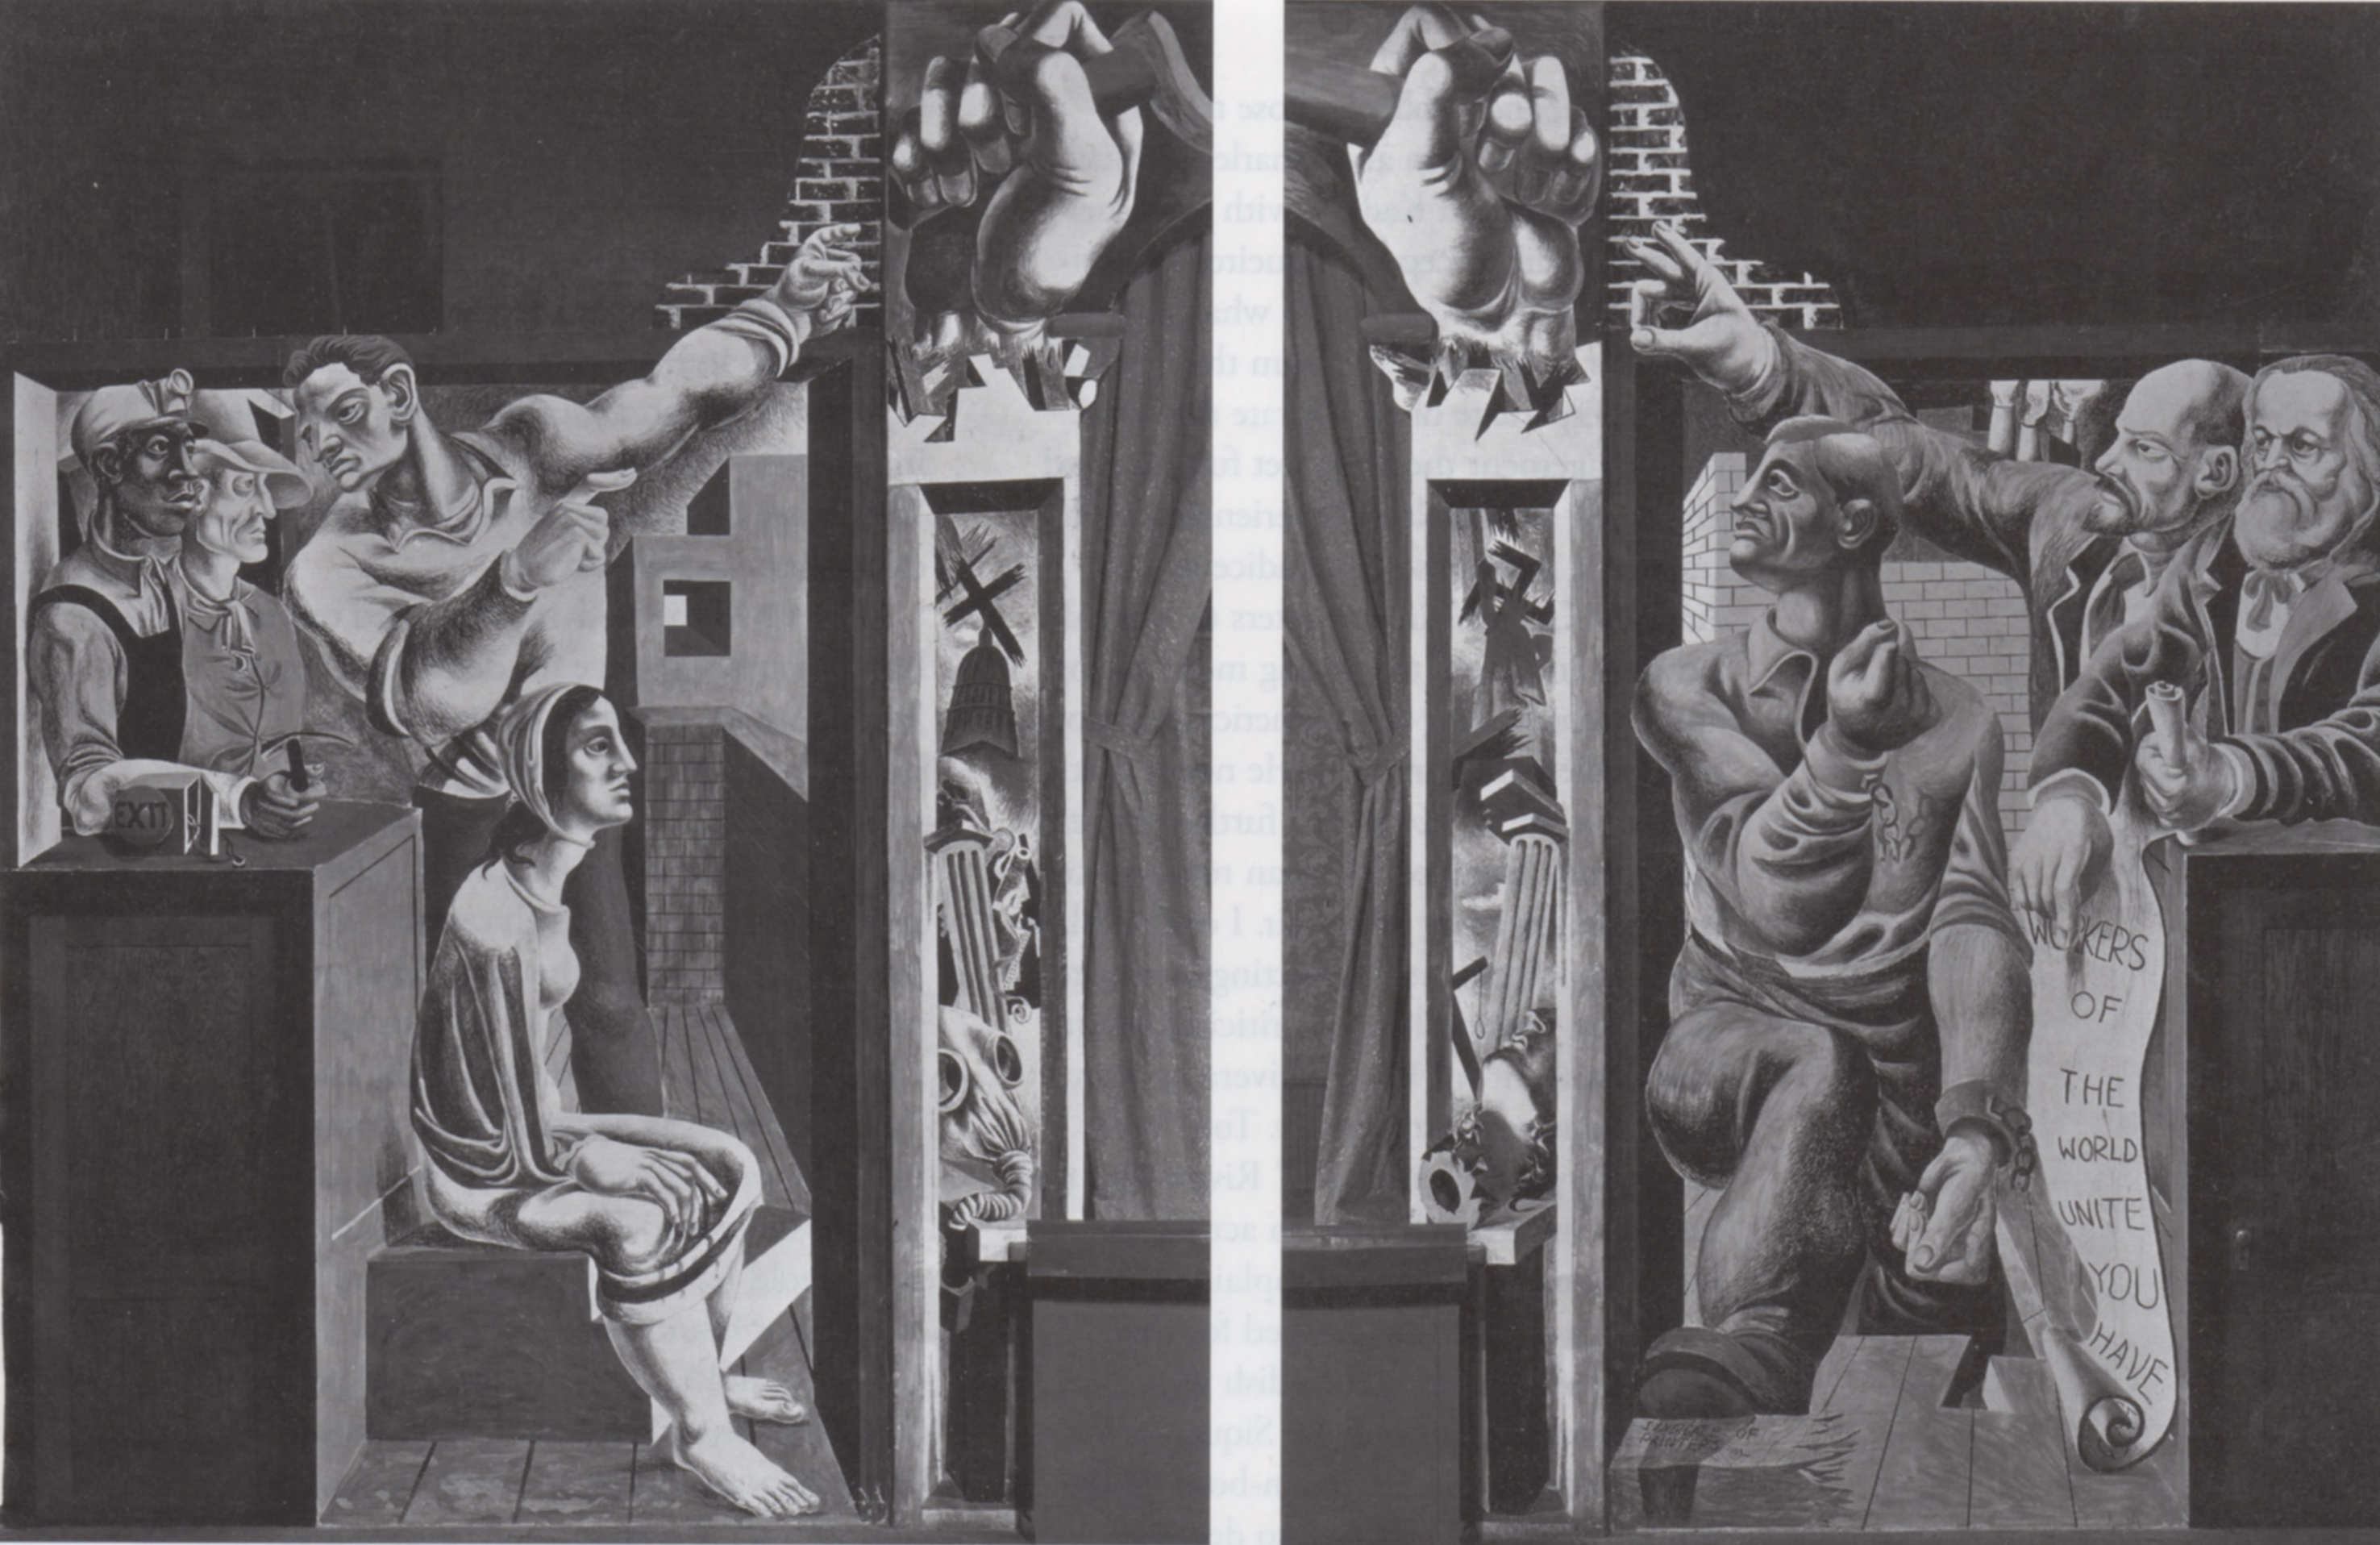 (fig. 13) Philip Guston, Reuben Kadish, and Sanford Pollock, Mural for Proscenium, Workers Alliance Center, Los Angeles, 1934. Fresco. Photo from the Reuben Kadish Papers, Archives of American Art, Smithsonian Institution, with permission of the Reuben Kadish Art Foundation